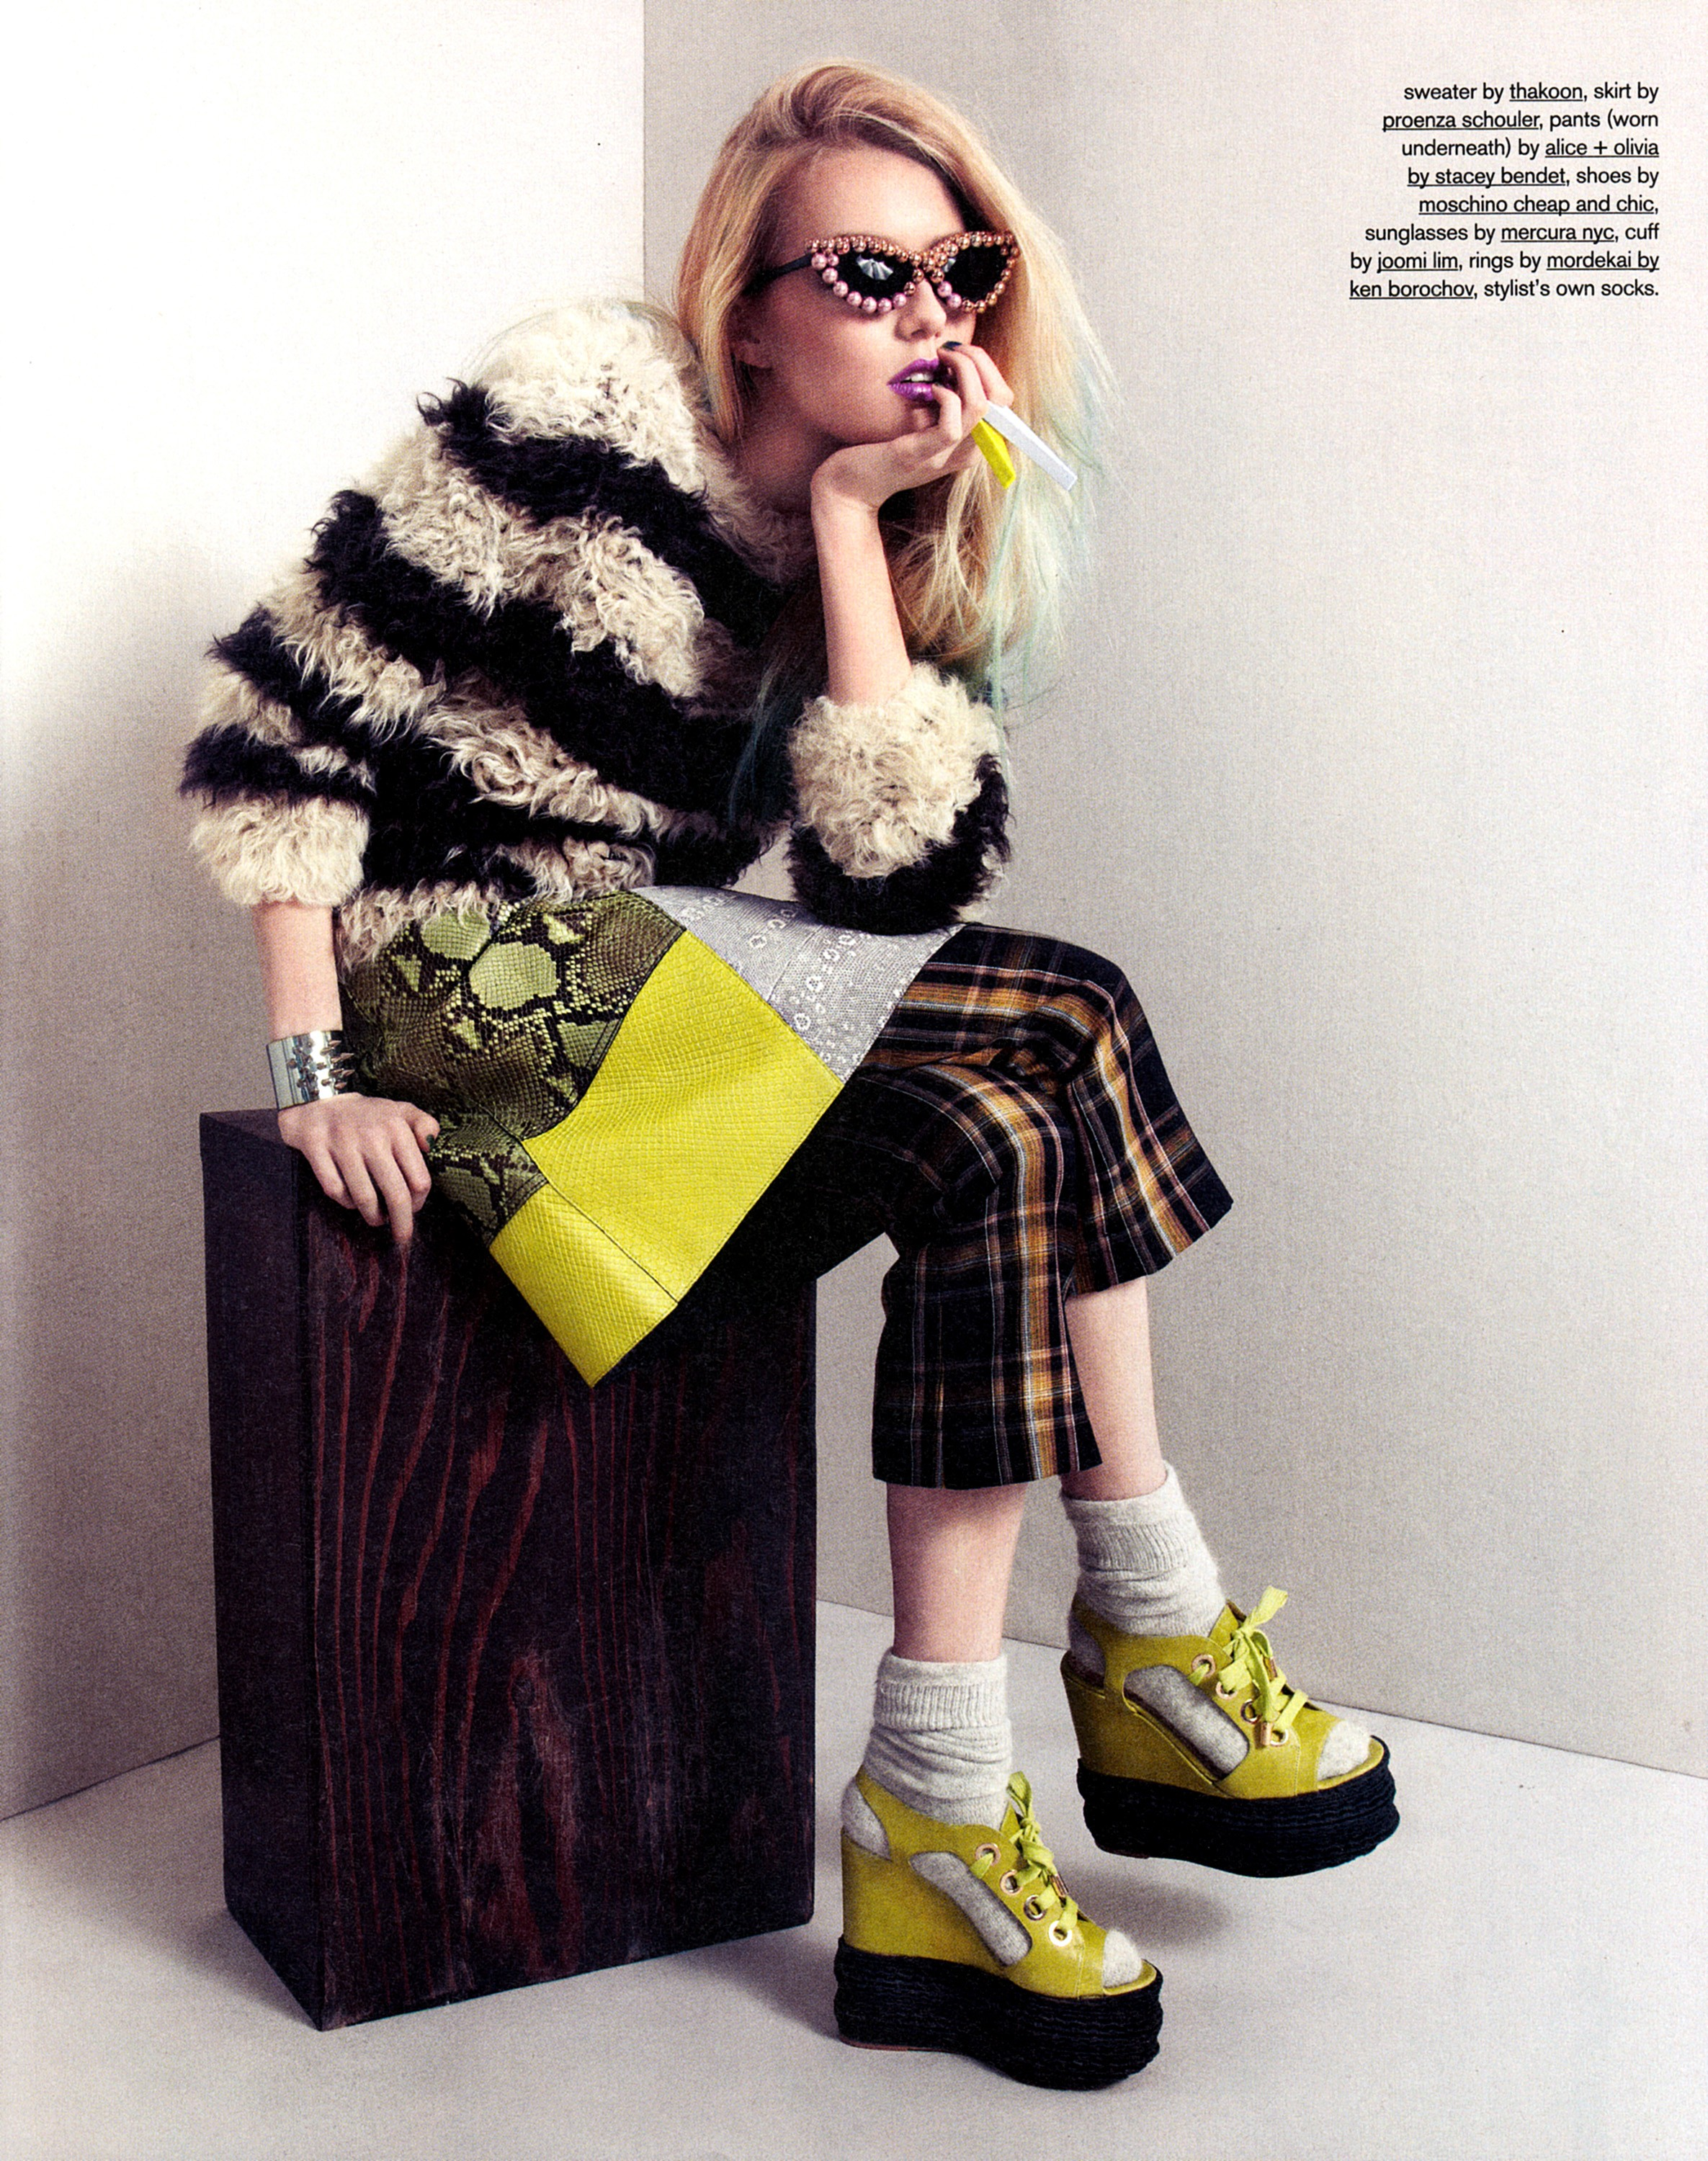 fashion_scans_remastered-megan_irminger-nylon_usa-april_2013-scanned_by_vampirehorde-hq-4